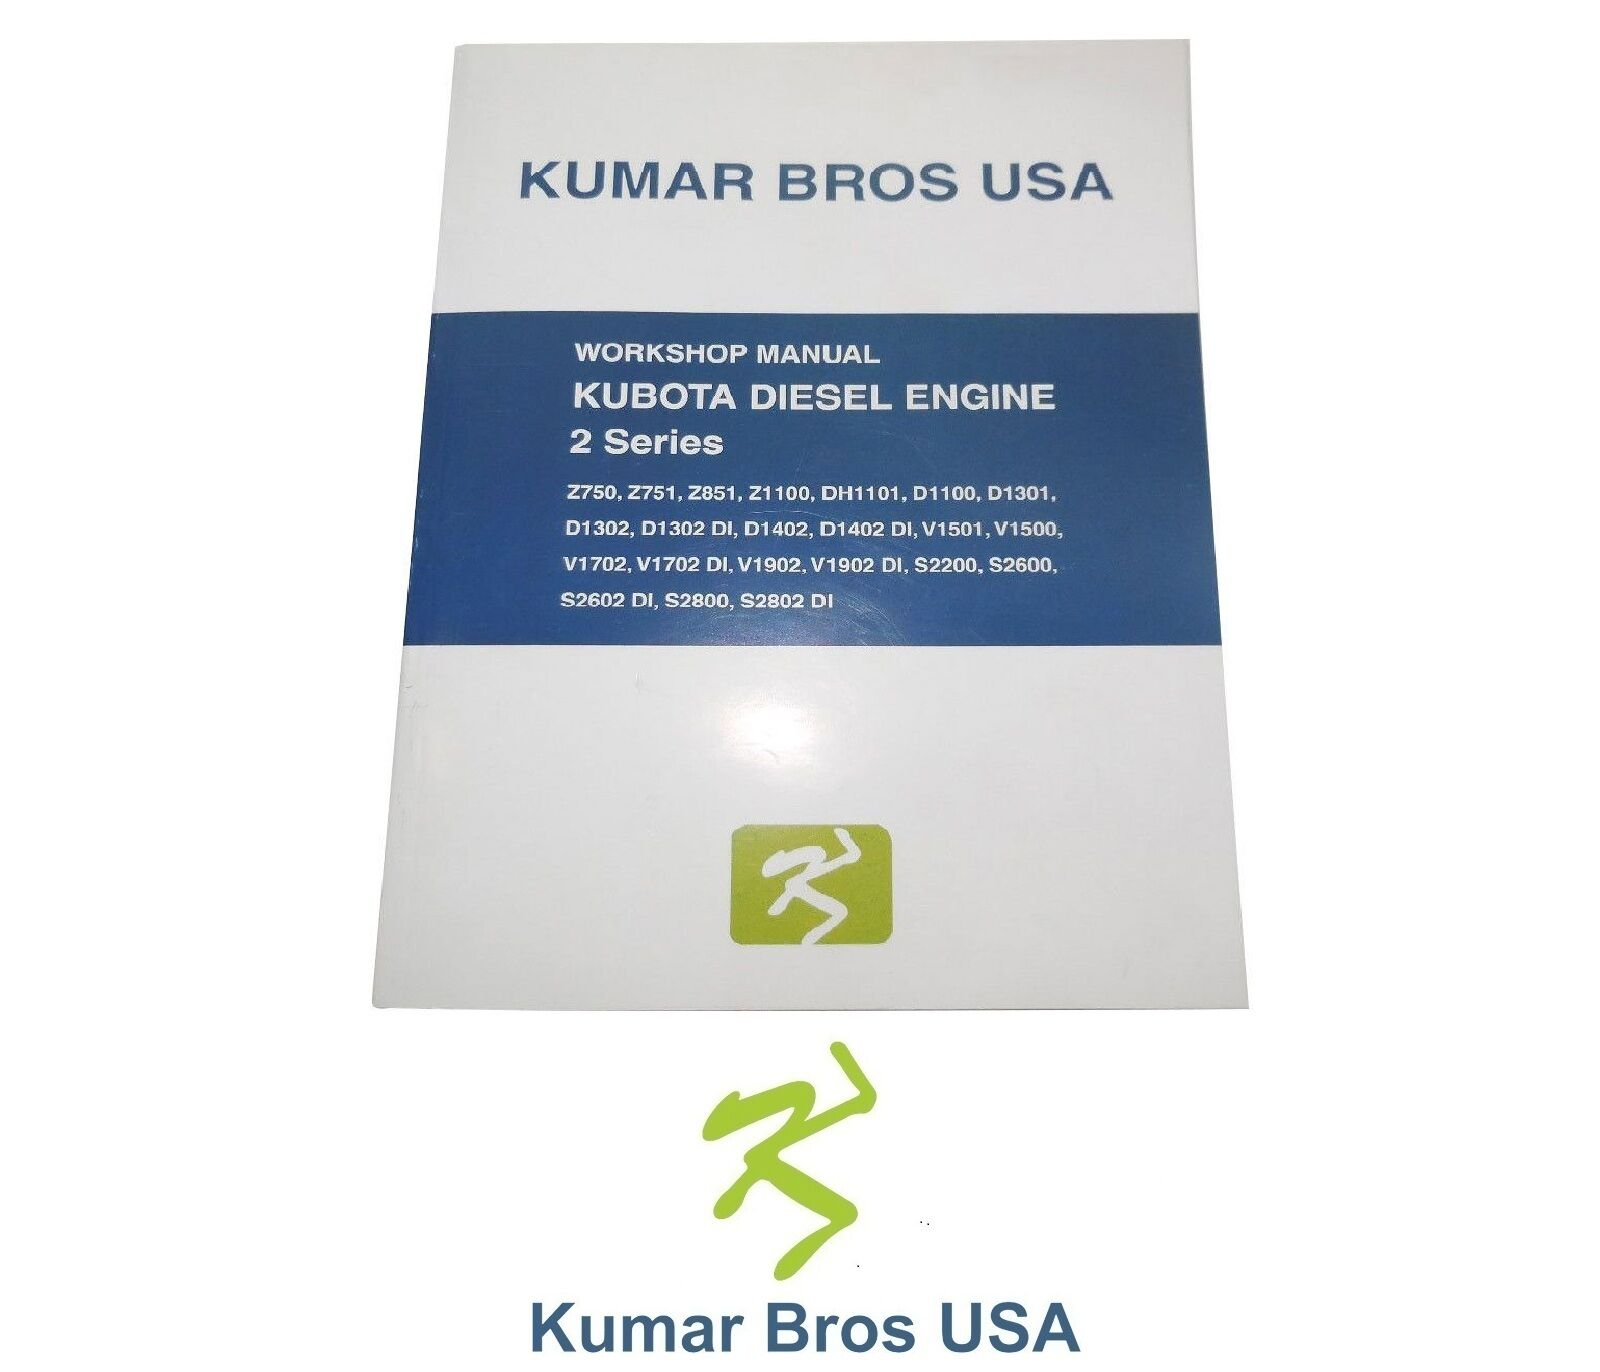 New Kubota D1302 Engine WORKSHOP MANUAL in 3 Languages ENGLISH, FRENCH,  GERMAN 1 of 7FREE Shipping See More